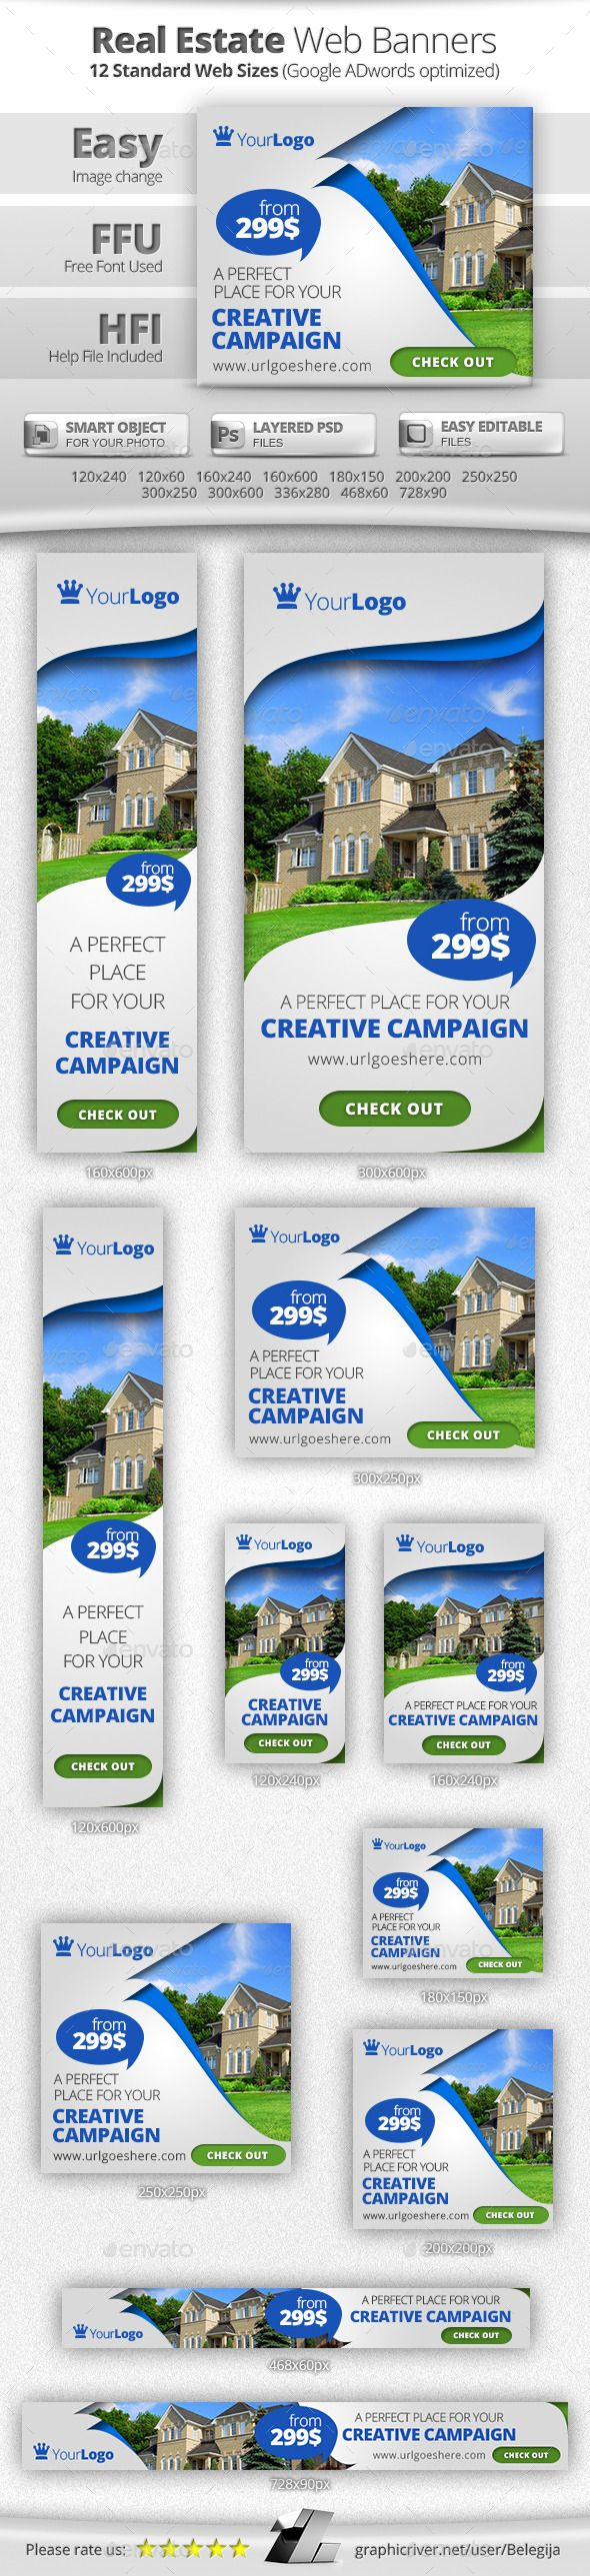 Multipurpose Real Estate Web Banners Template PSD | Buy and Download: http://graphicriver.net/item/multipurpose-real-estate-web-banners/9660796?WT.oss_phrase=banner&WT.oss_rank=8&WT.z_author=Belegija&WT.ac=search_thumb&ref=ksioks